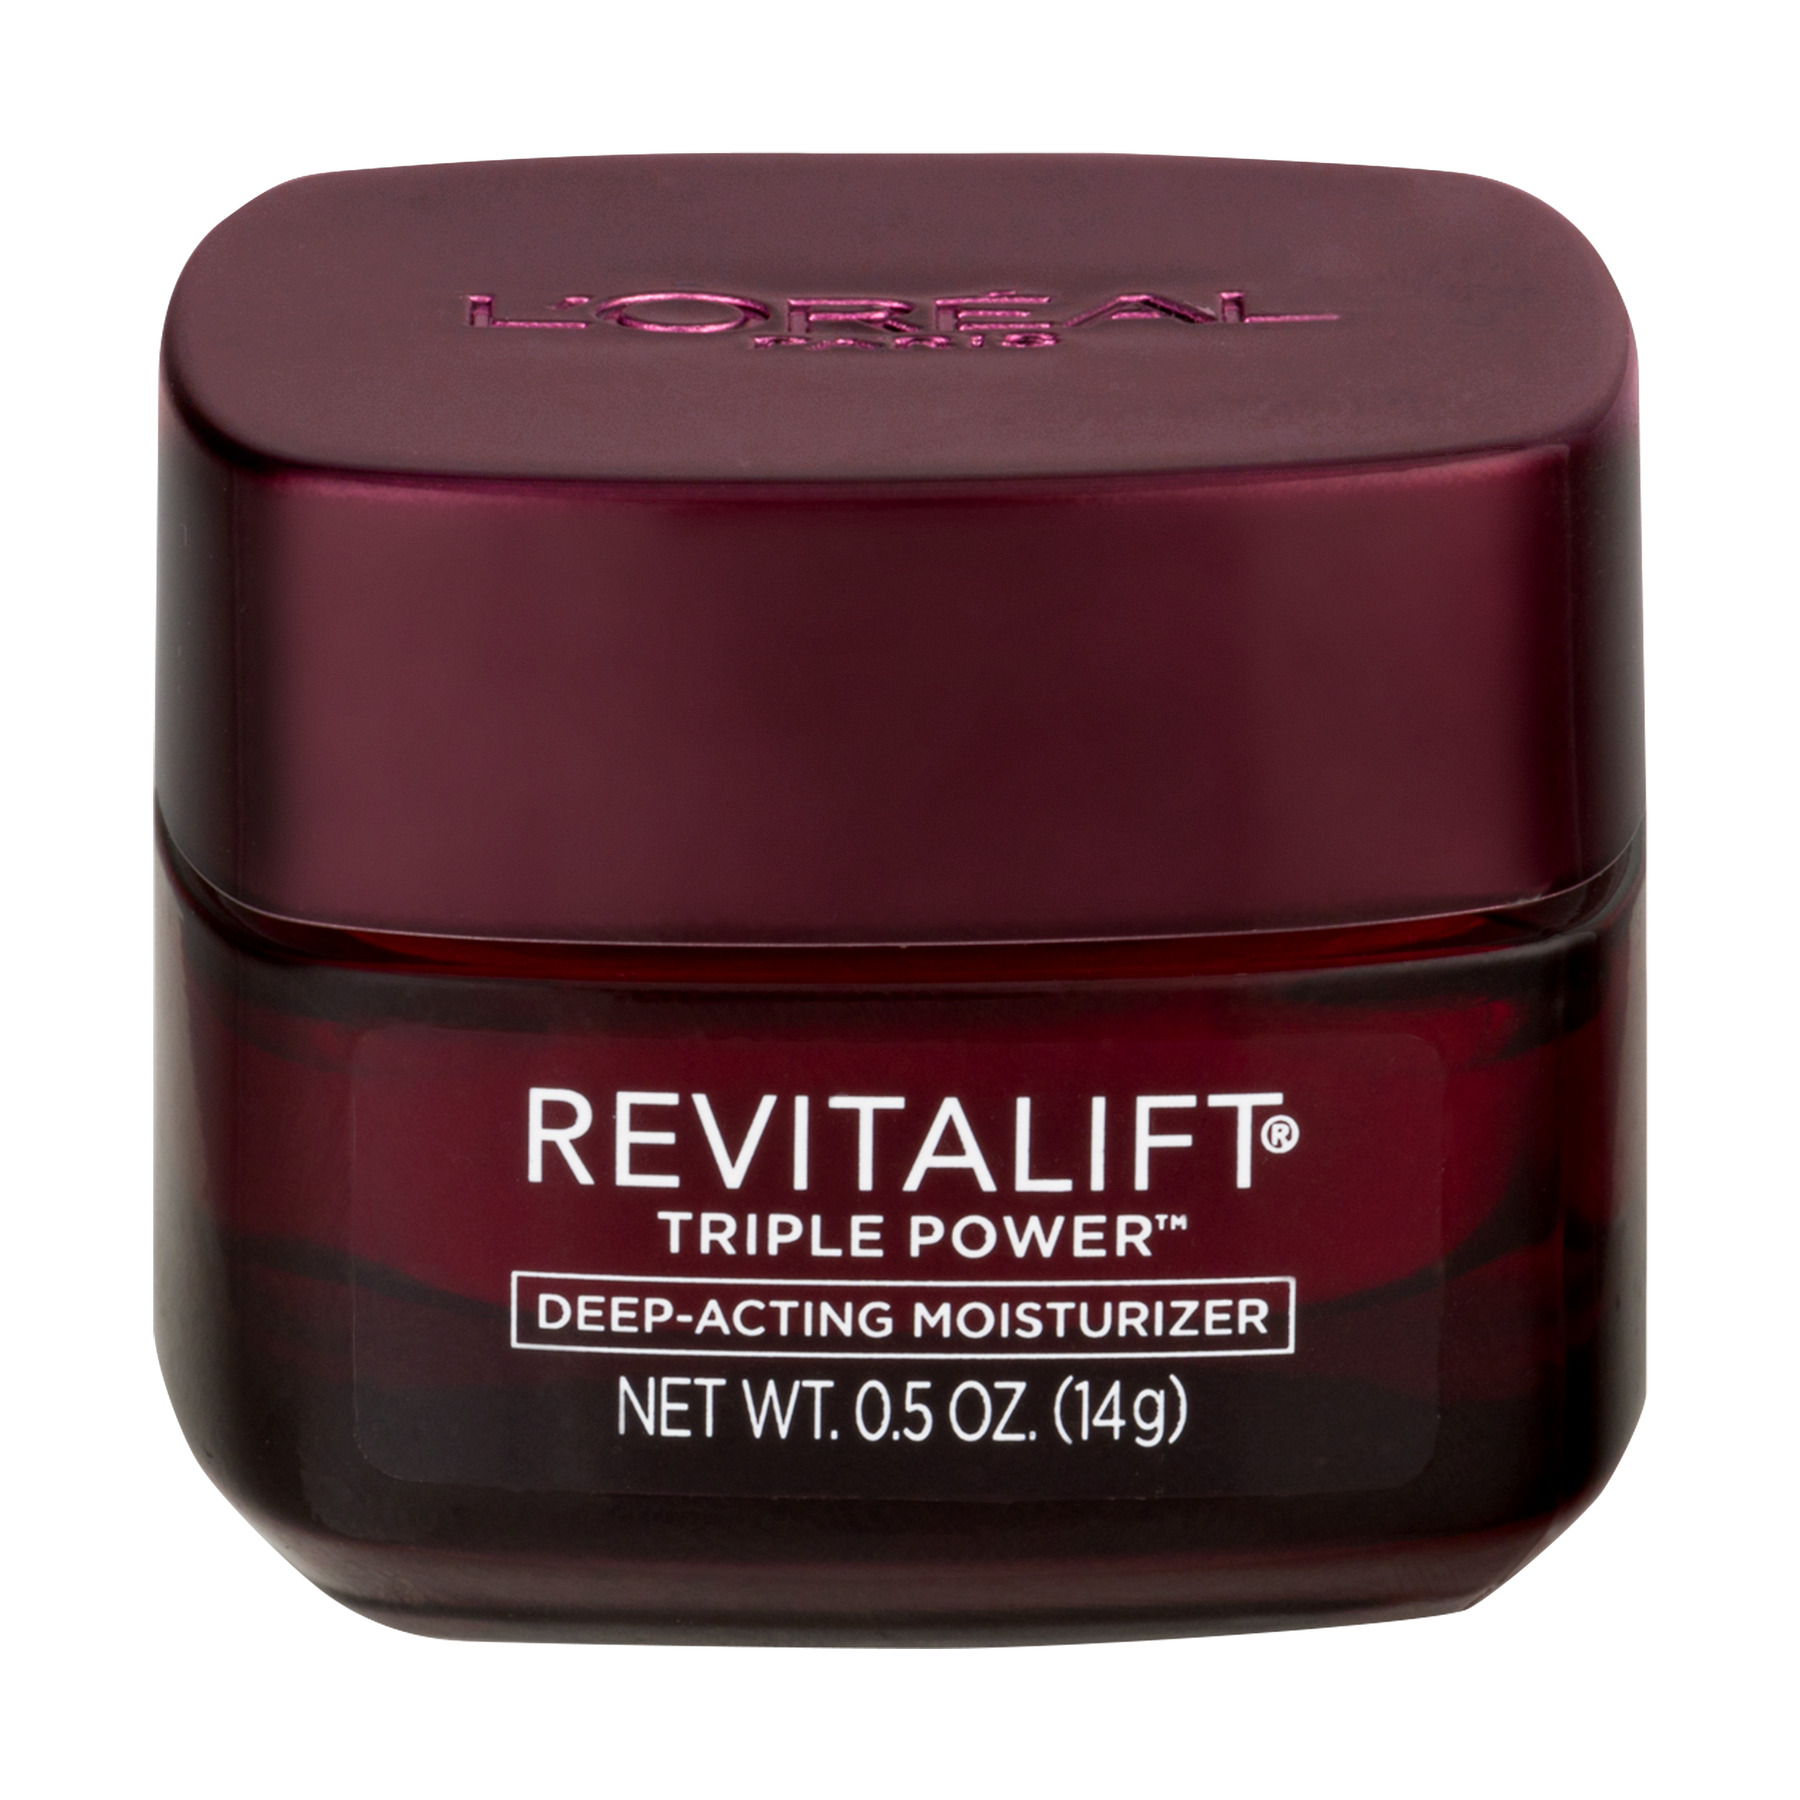 L'Oreal Paris Revitalift Triple Power Intensive Anti-Aging Day Cream Moisturizer, 0.5 oz